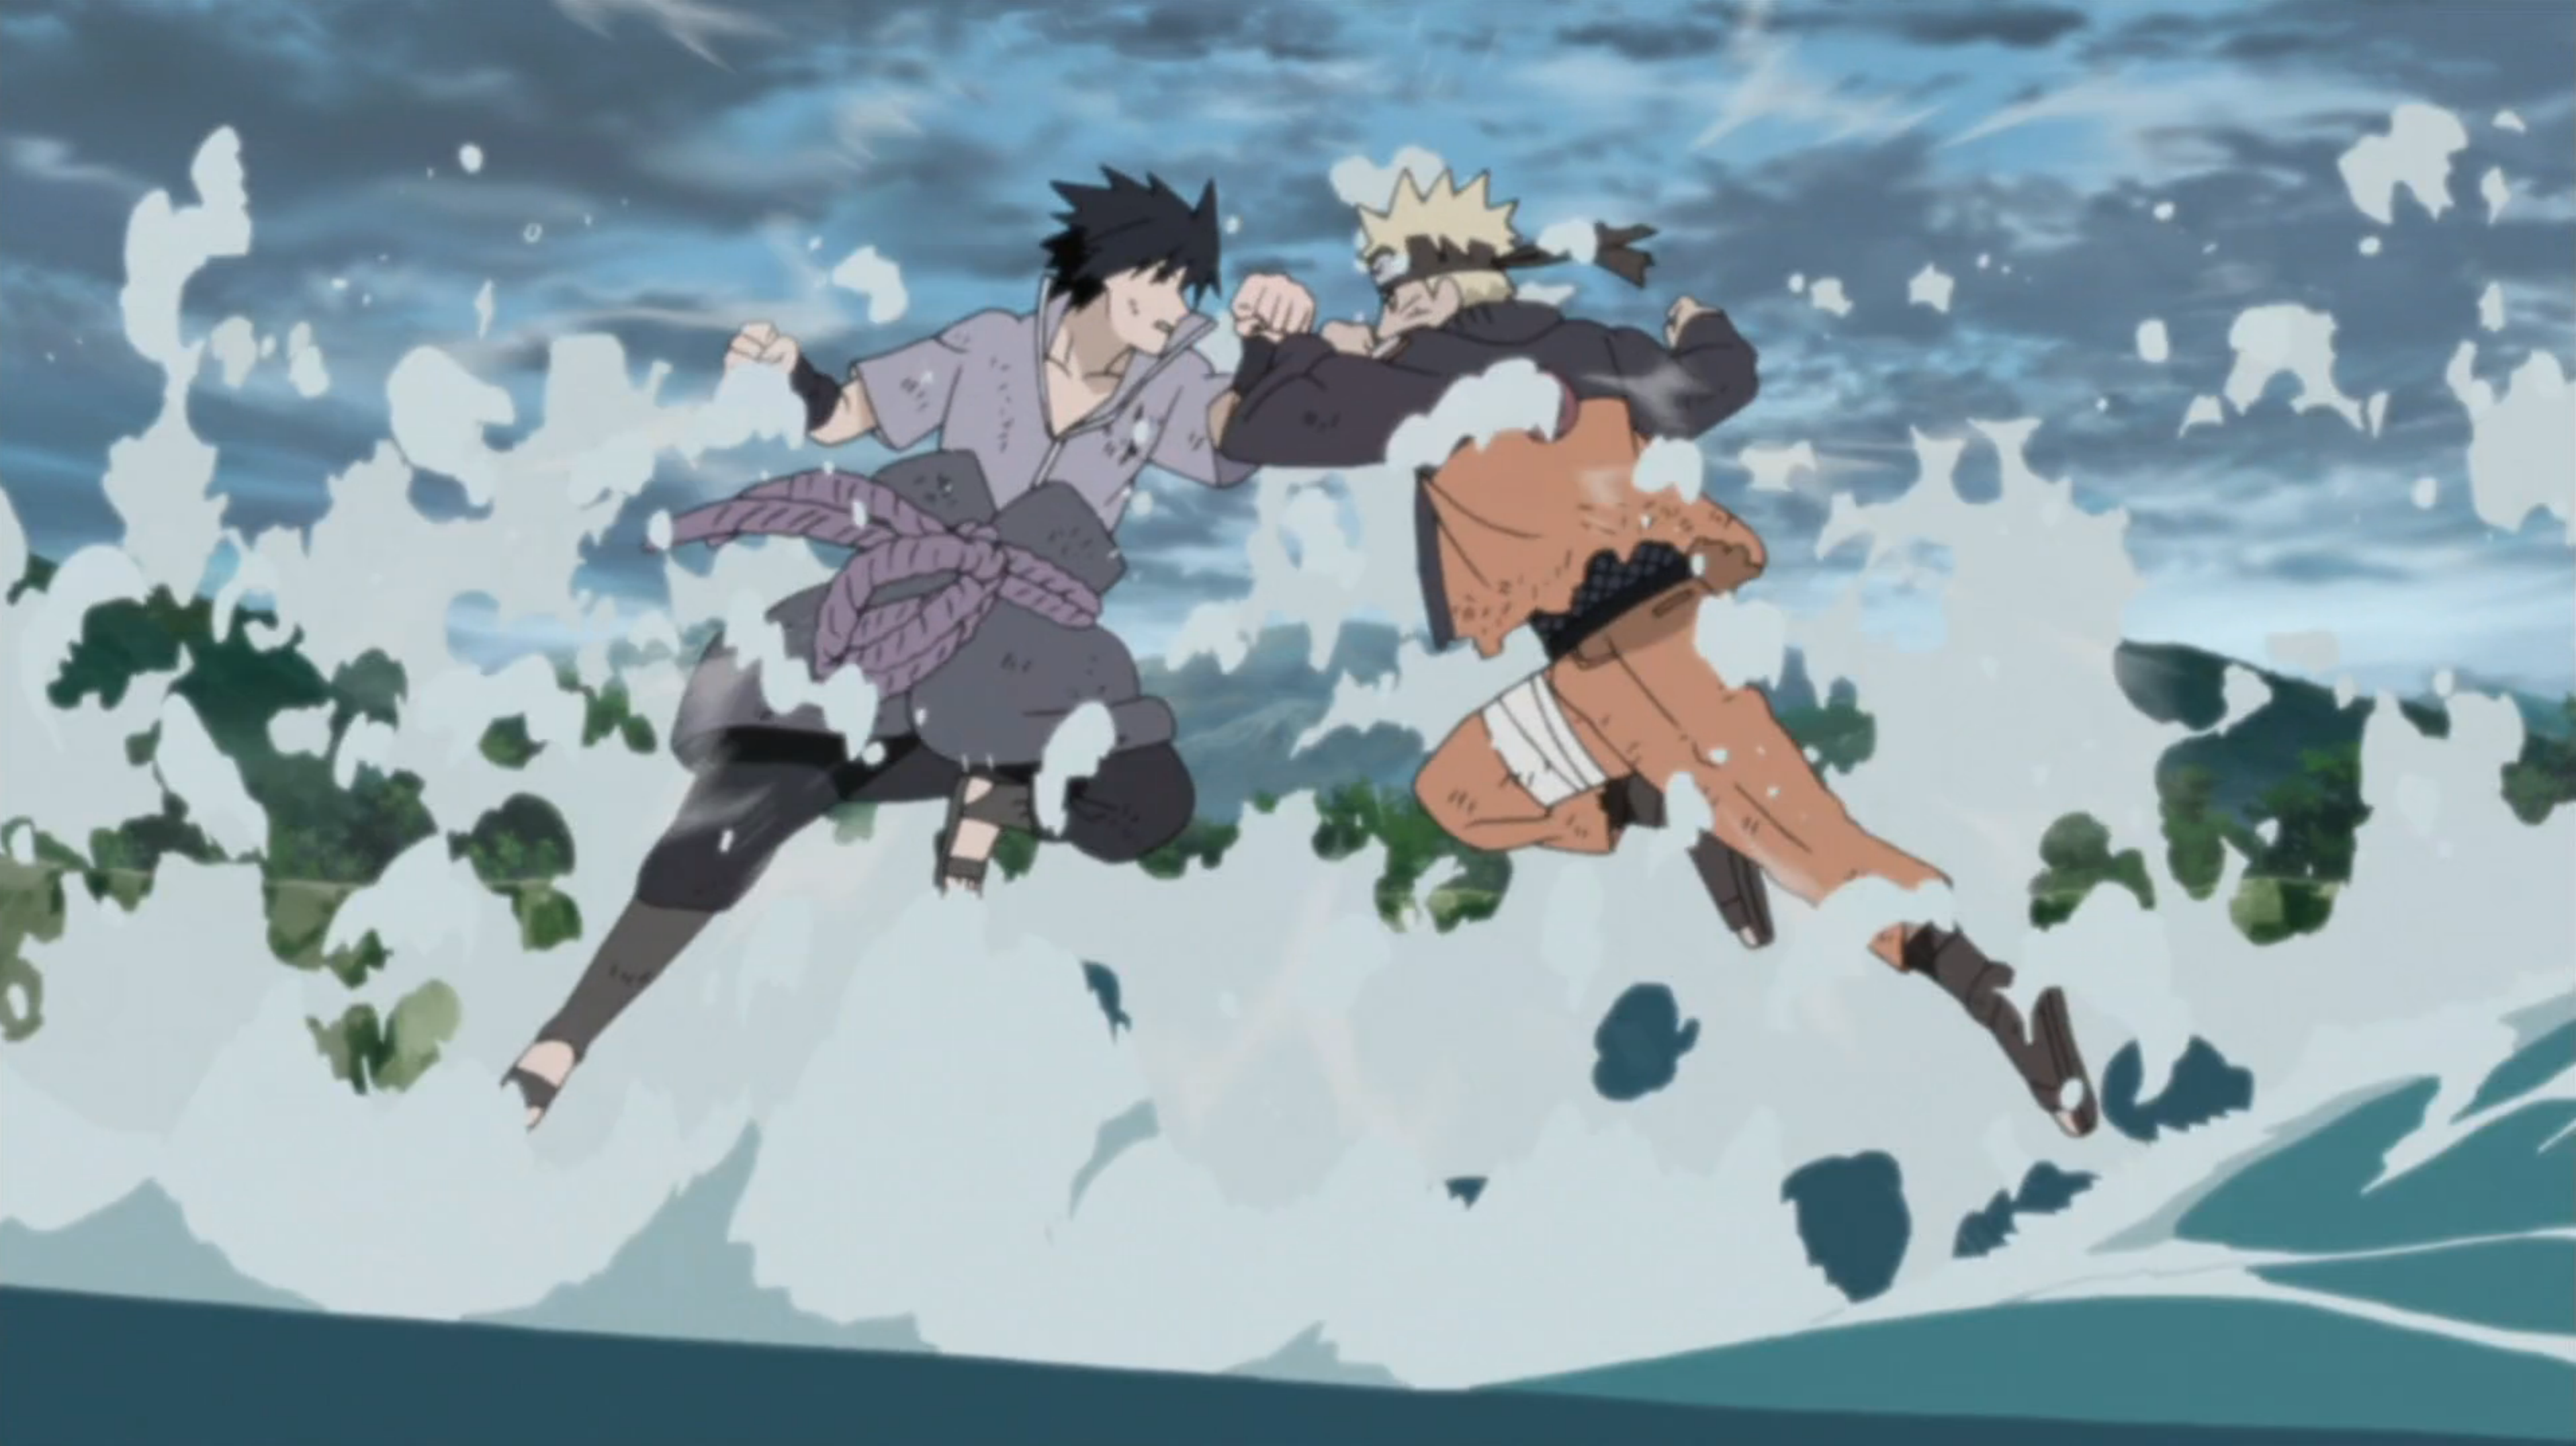 image naruto vs sasuke begins png narutopedia fandom powered